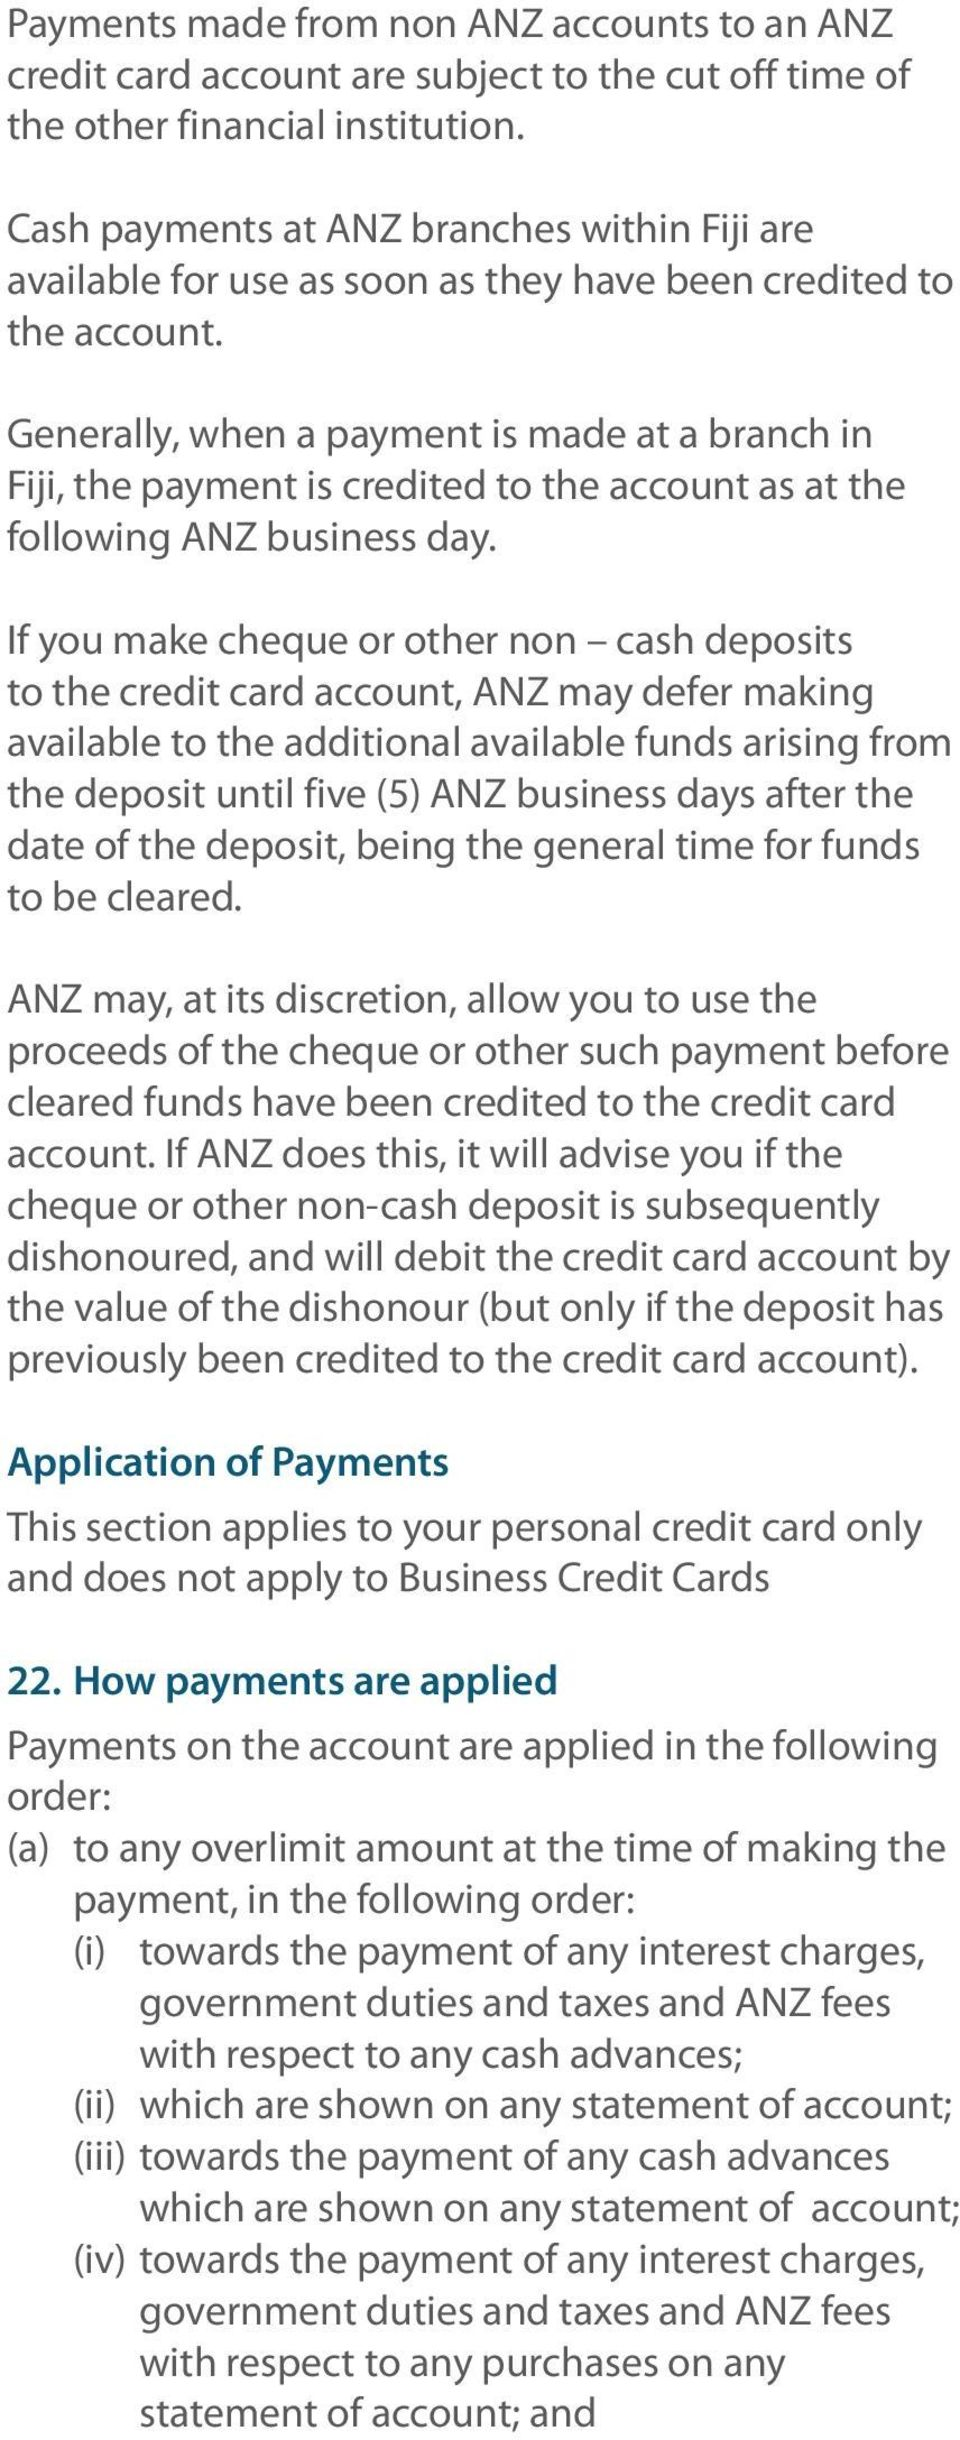 Generally, when a payment is made at a branch in Fiji, the payment is credited to the account as at the following ANZ business day.